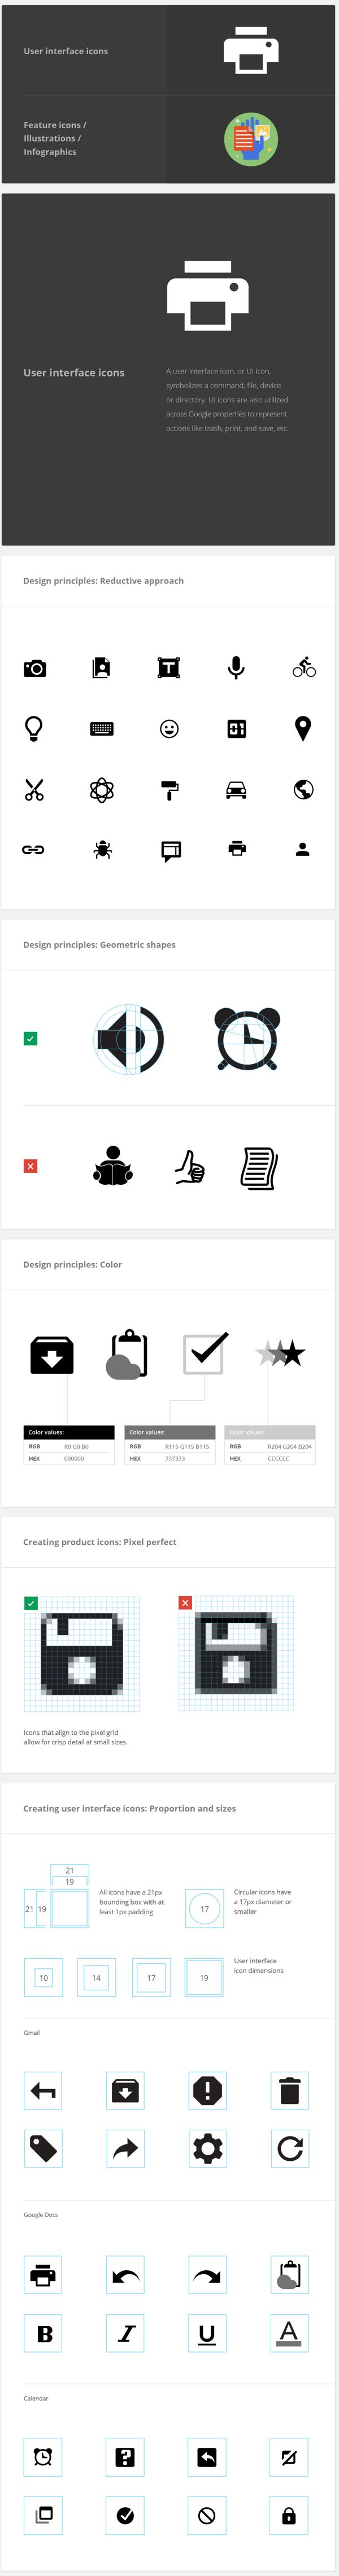 Google Visual Assets Guidelines - Part 2